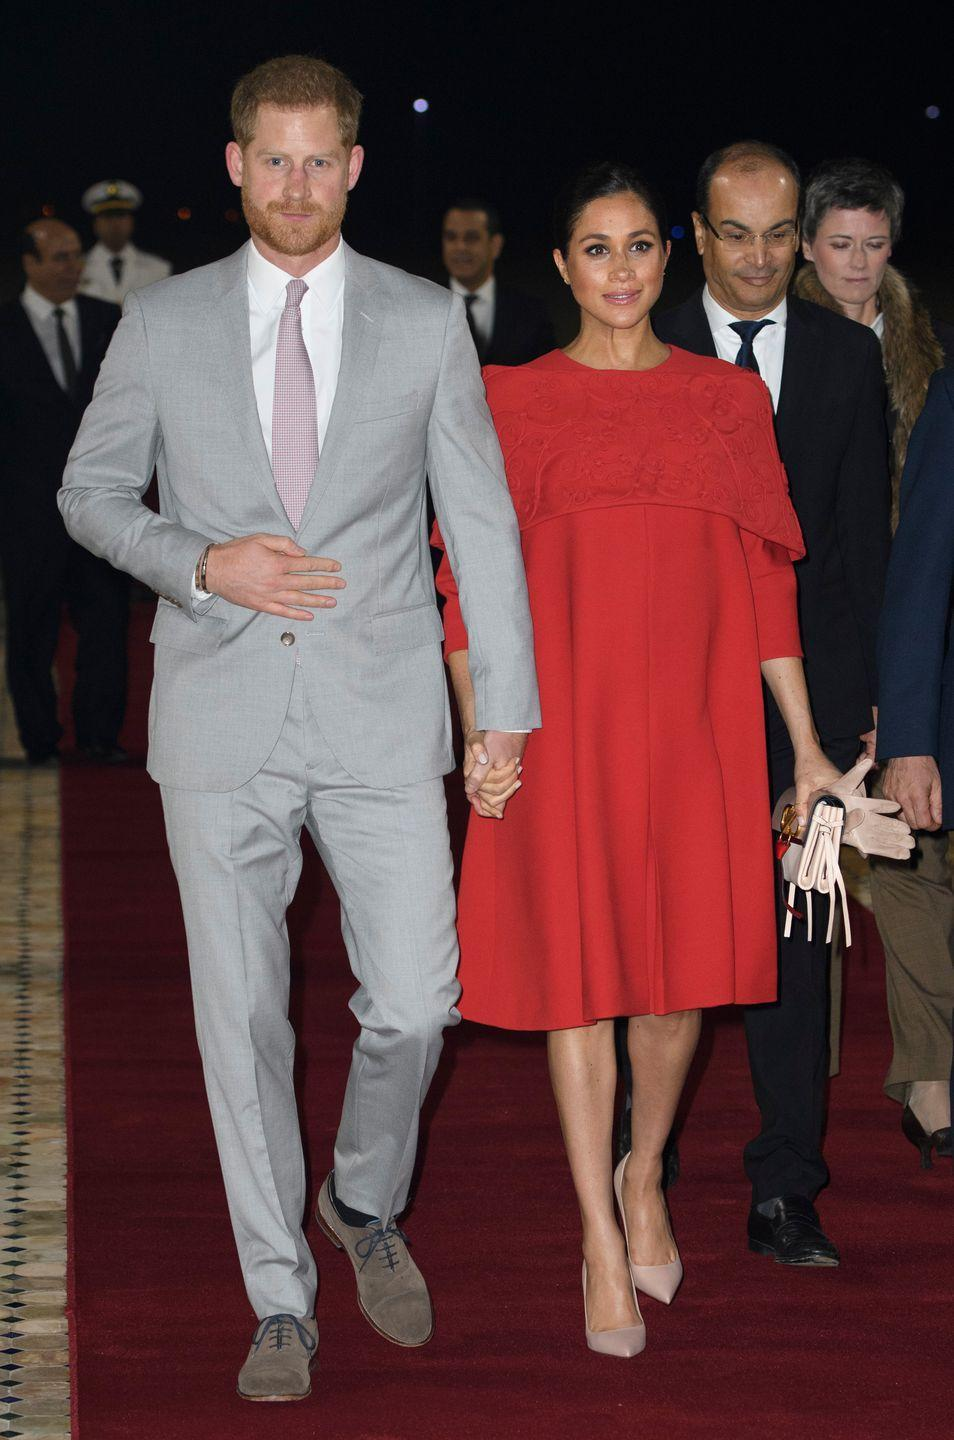 """<p>The Duchess of Sussex wore a red Valentino cape dress and nude pumps as she arrived with Prince Harry in Casablanca, Morocco to start off their royal tour. Meghan carried a pair of beige gloves and a <a href=""""https://www.farfetch.com/shopping/women/valentino/items.aspx?"""" rel=""""nofollow noopener"""" target=""""_blank"""" data-ylk=""""slk:Valentino Garavani"""" class=""""link rapid-noclick-resp"""">Valentino Garavani</a> clutch. </p><p><a class=""""link rapid-noclick-resp"""" href=""""https://go.redirectingat.com?id=74968X1596630&url=https%3A%2F%2Fwww.neimanmarcus.com%2Fp%2Fvalentino-garavani-vee-ring-medium-colorblock-leather-shoulder-bag-prod218040102&sref=https%3A%2F%2Fwww.townandcountrymag.com%2Fstyle%2Ffashion-trends%2Fg3272%2Fmeghan-markle-preppy-style%2F"""" rel=""""nofollow noopener"""" target=""""_blank"""" data-ylk=""""slk:Shop Similar"""">Shop Similar</a> <em>Vee Ring Medium Shoulder Bag, Valentino Garavani, $3,295</em><em><br></em></p>"""